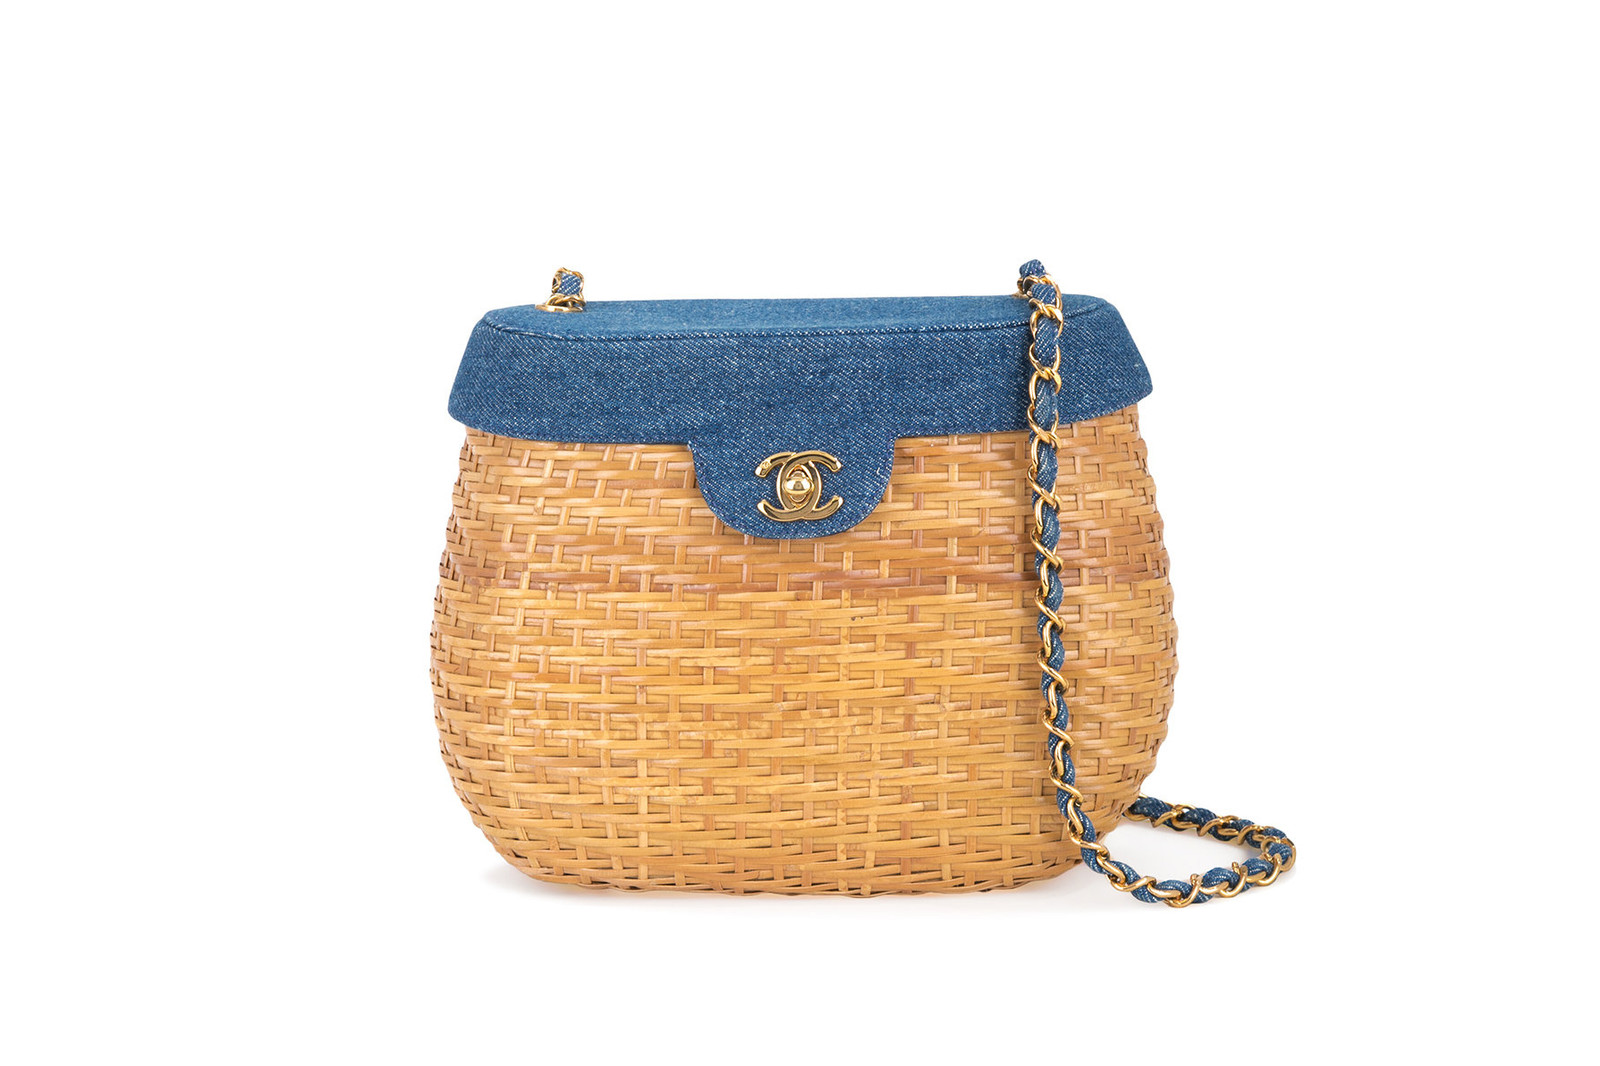 Picnic Basket Bag Trend Roundup Prada Chanel Cult Gaia Loewe Miu Miu Saint Laurent